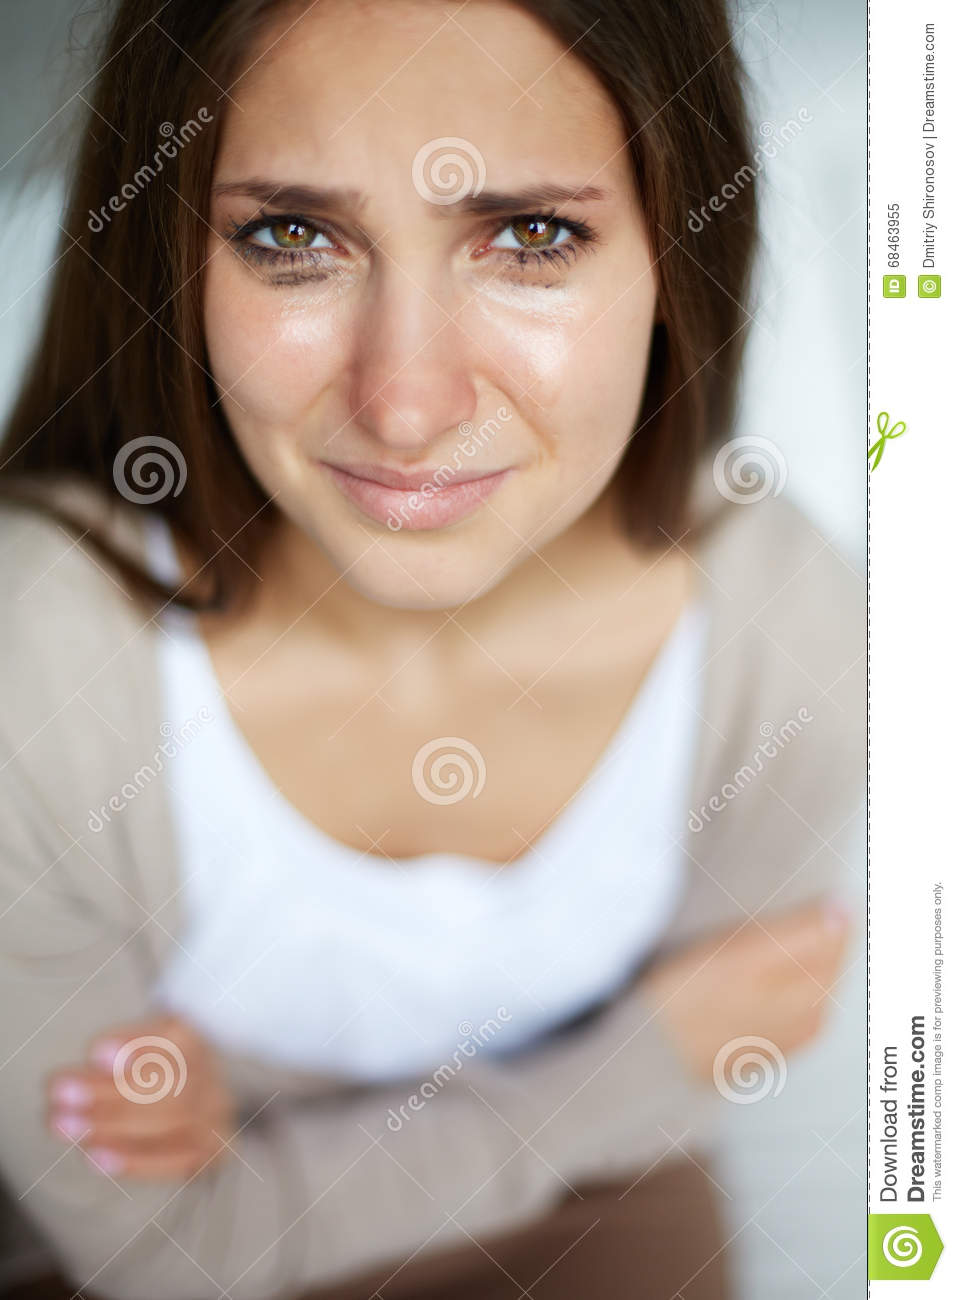 Woman Crying Stock Image. Image Of Problem, Heartache